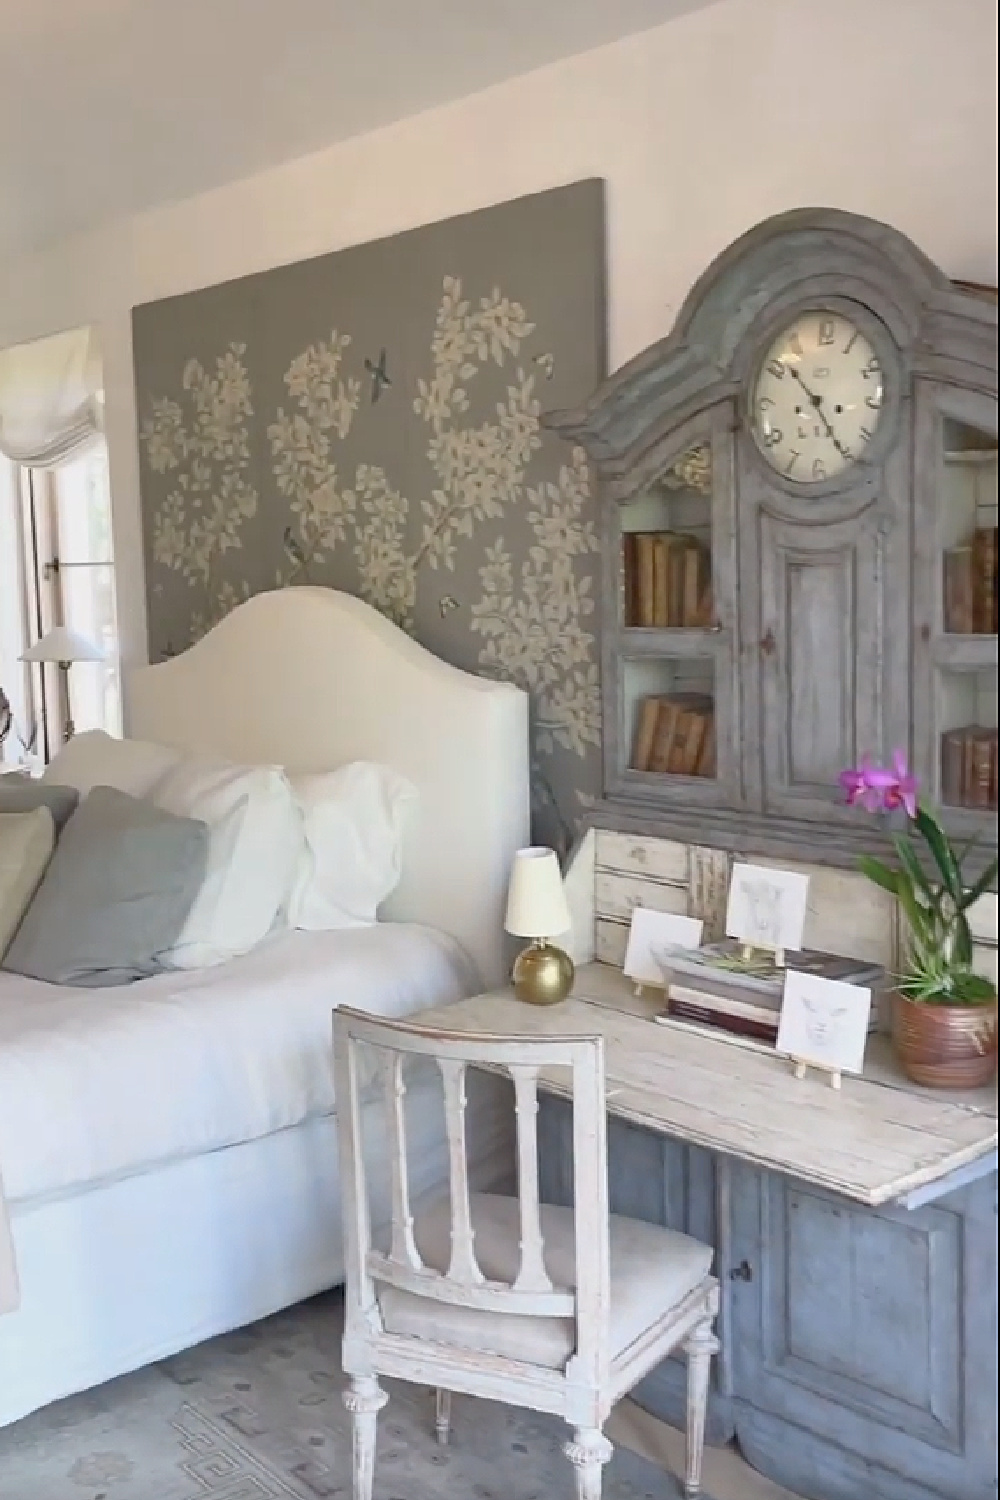 Chalky blue grey is stunning in a Gracie Studio wallcovering and antique Swedish desk in a bedroom by Giannetti Home at Patina Farm. #bedroomdecor #frenchfarmhouse #swedishantiques #nordicfrench #patinafarm